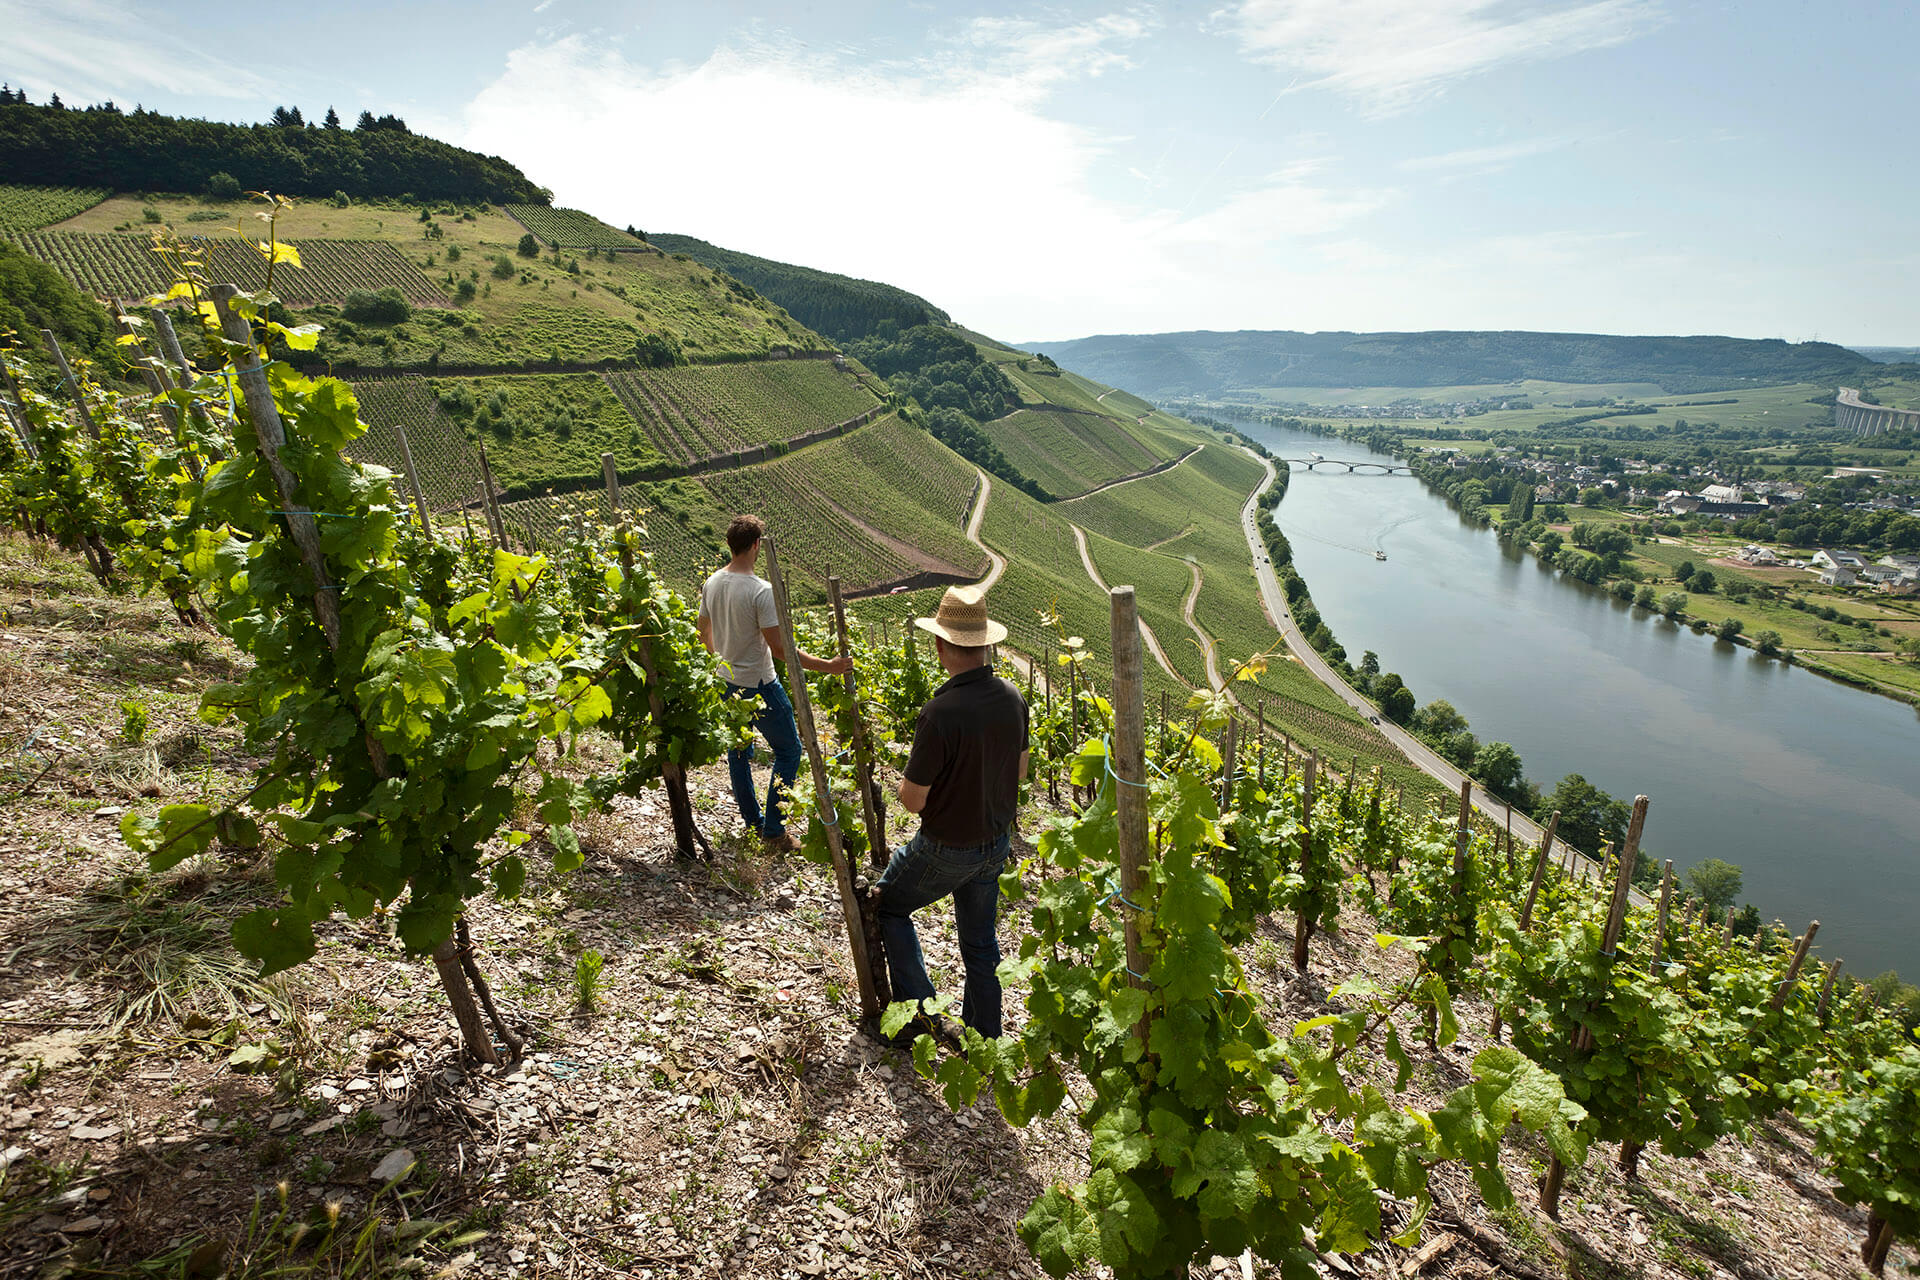 Two men amid staked vines on a steep hillside over a river